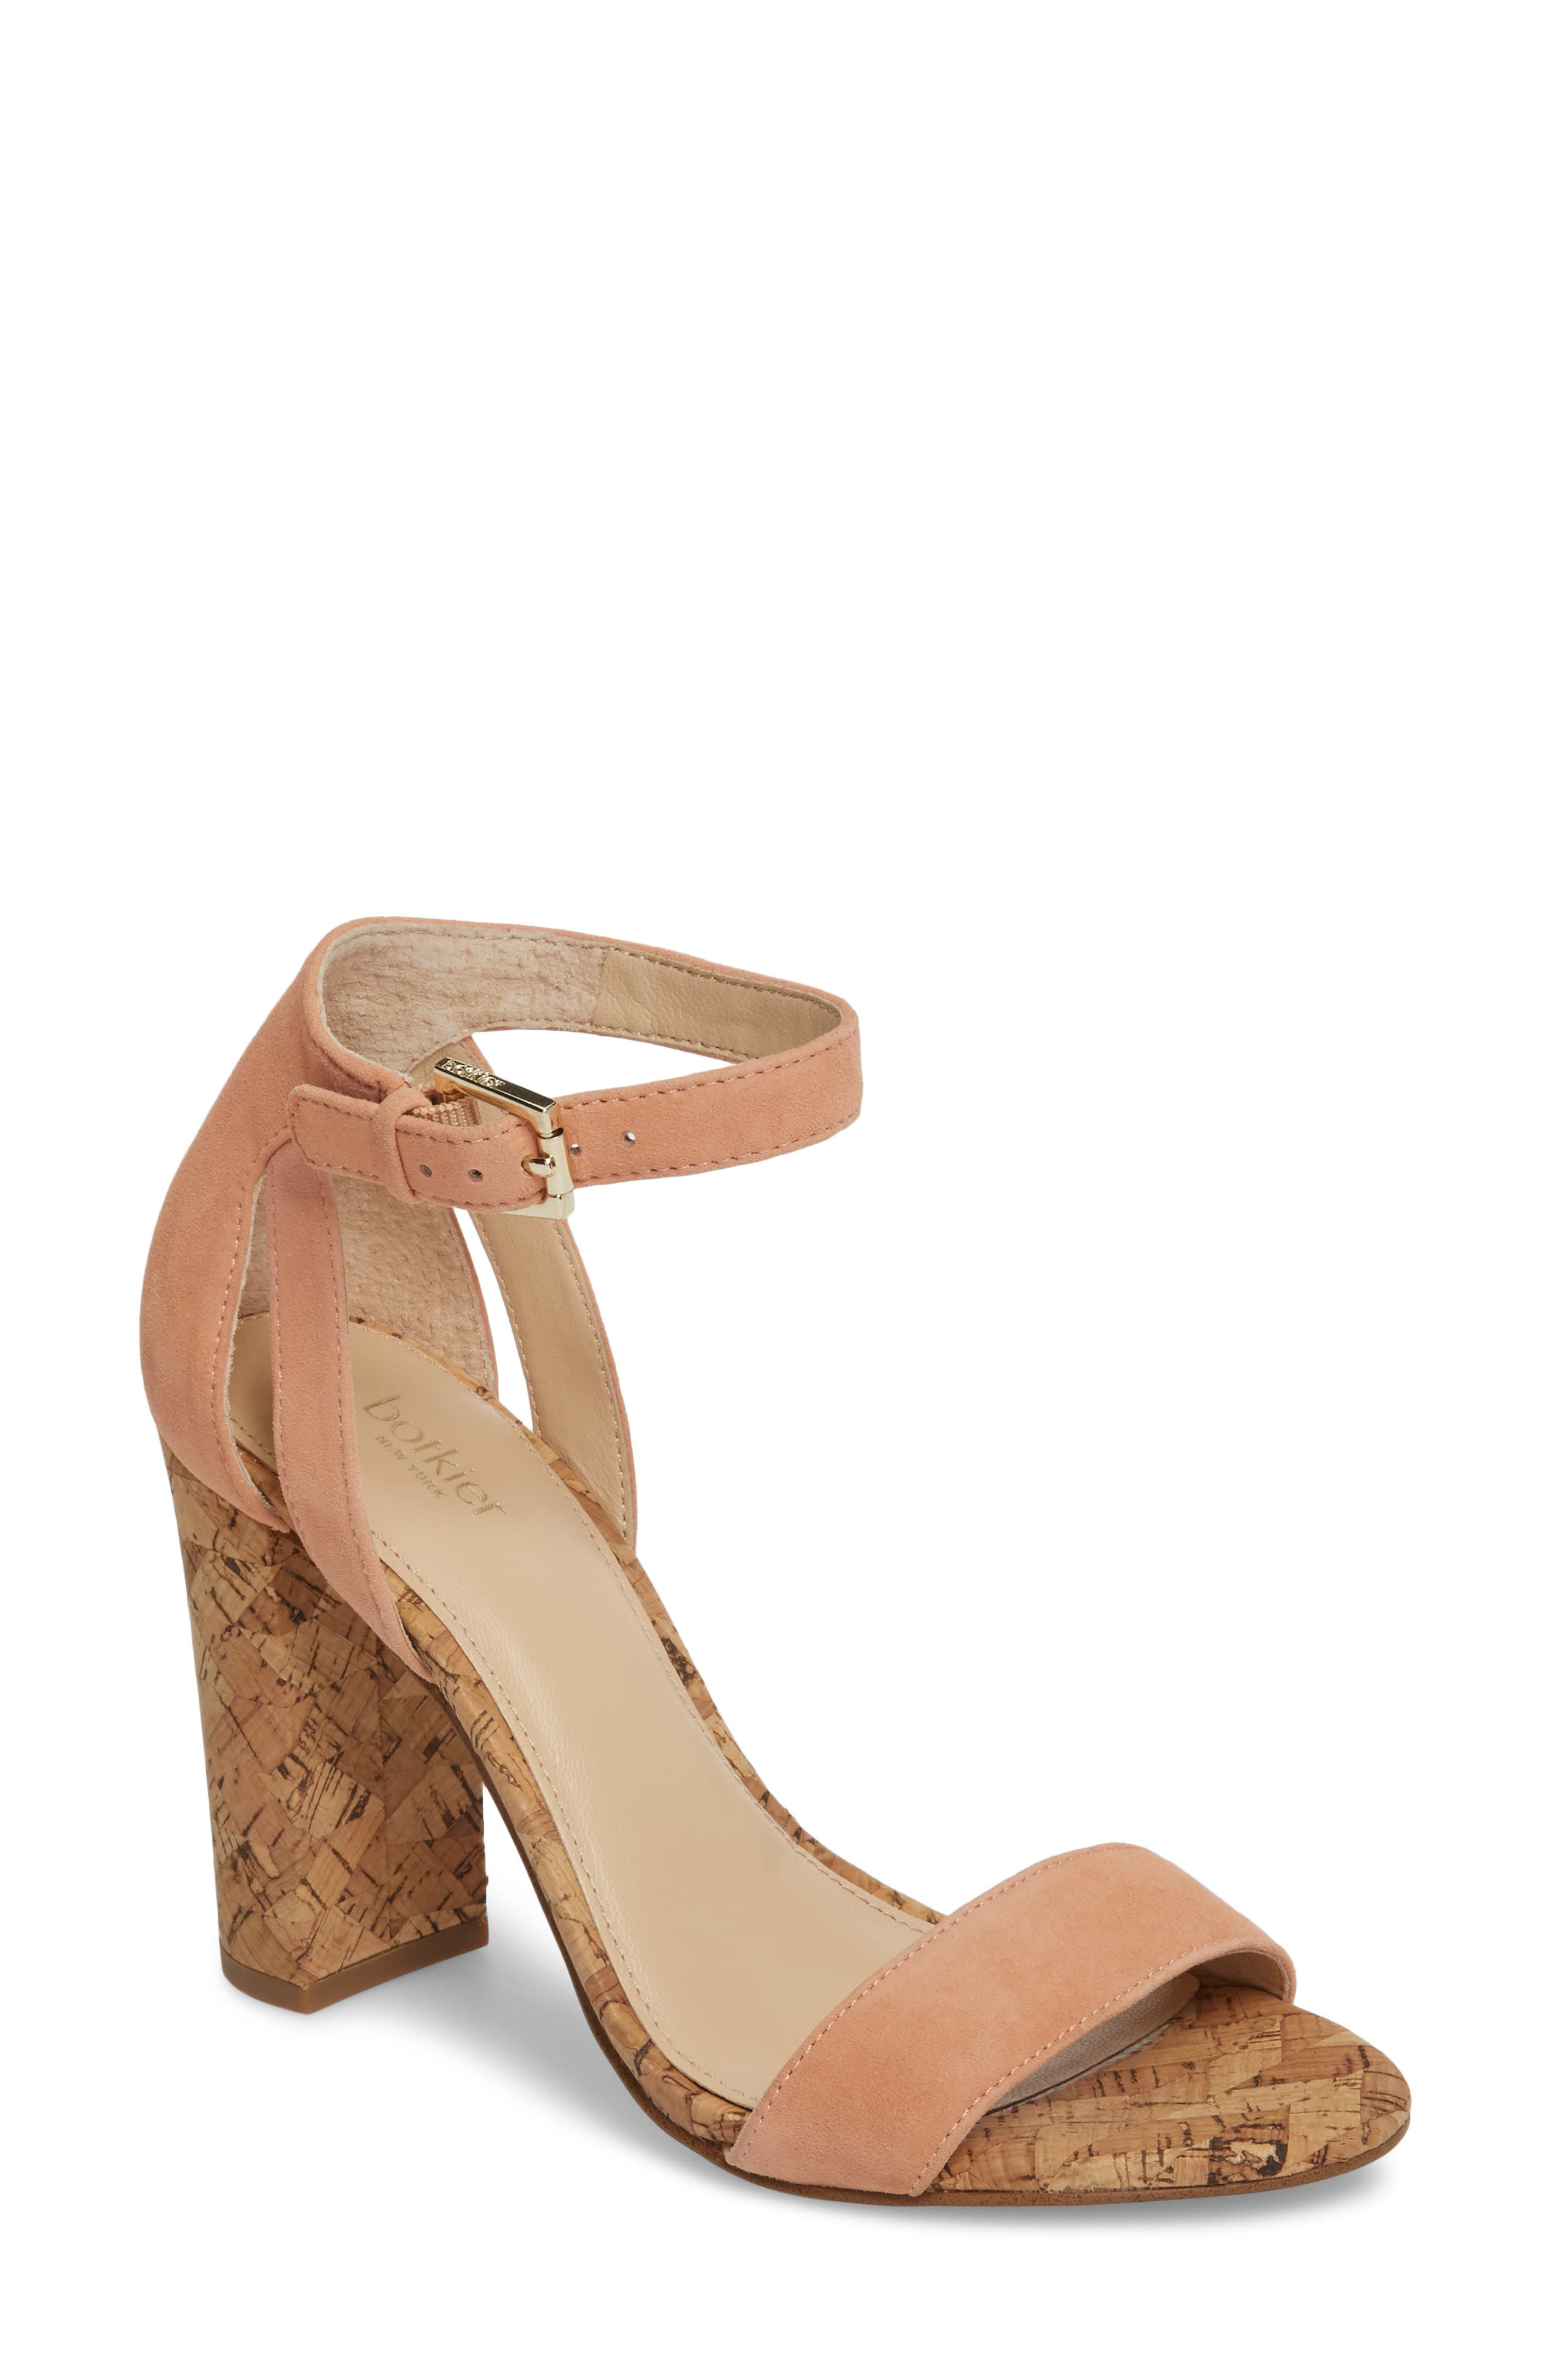 Gianna Ankle Strap Sandal,                             Main thumbnail 1, color,                             Soft Peach Suede